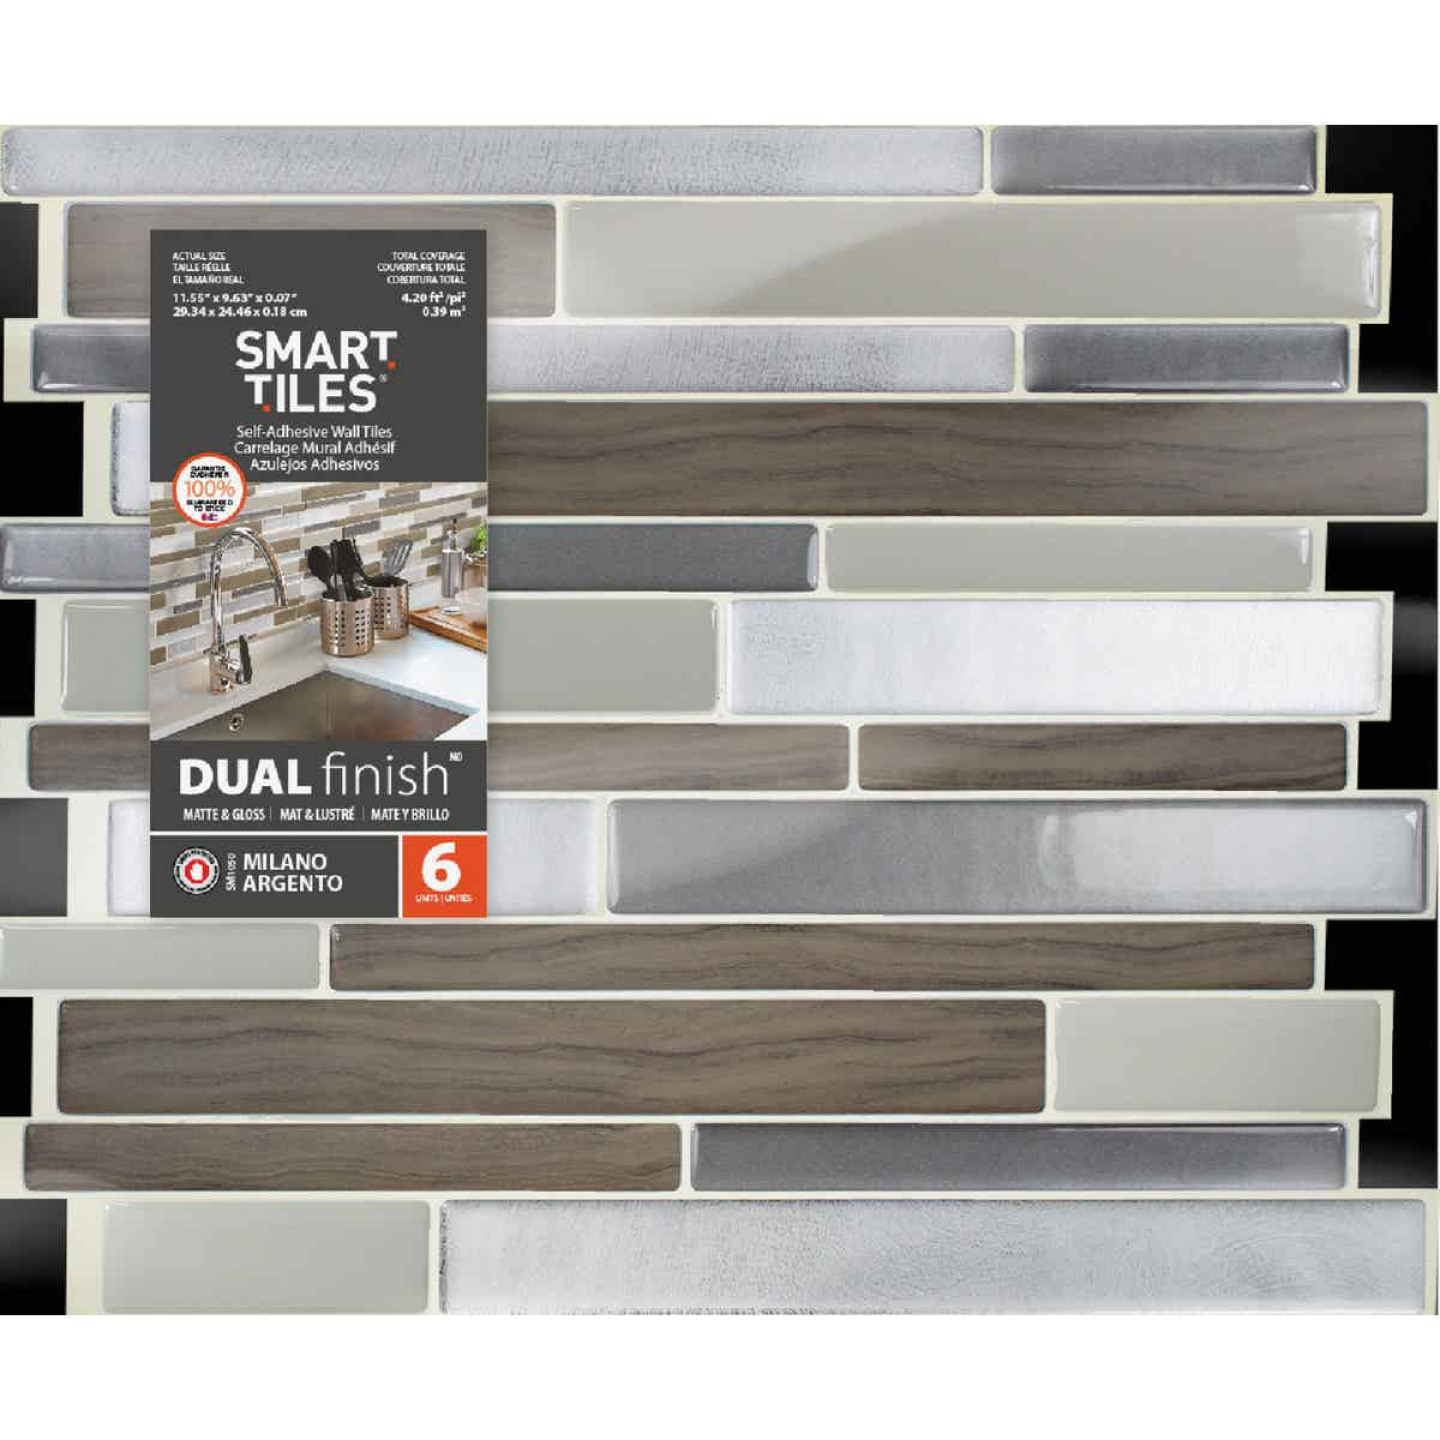 Smart Tiles 9.63 In. x 11.55 In. Glass-Like Plastic Backsplash Peel & Stick, Milano Argento Mosaic (6-Pack) Image 2